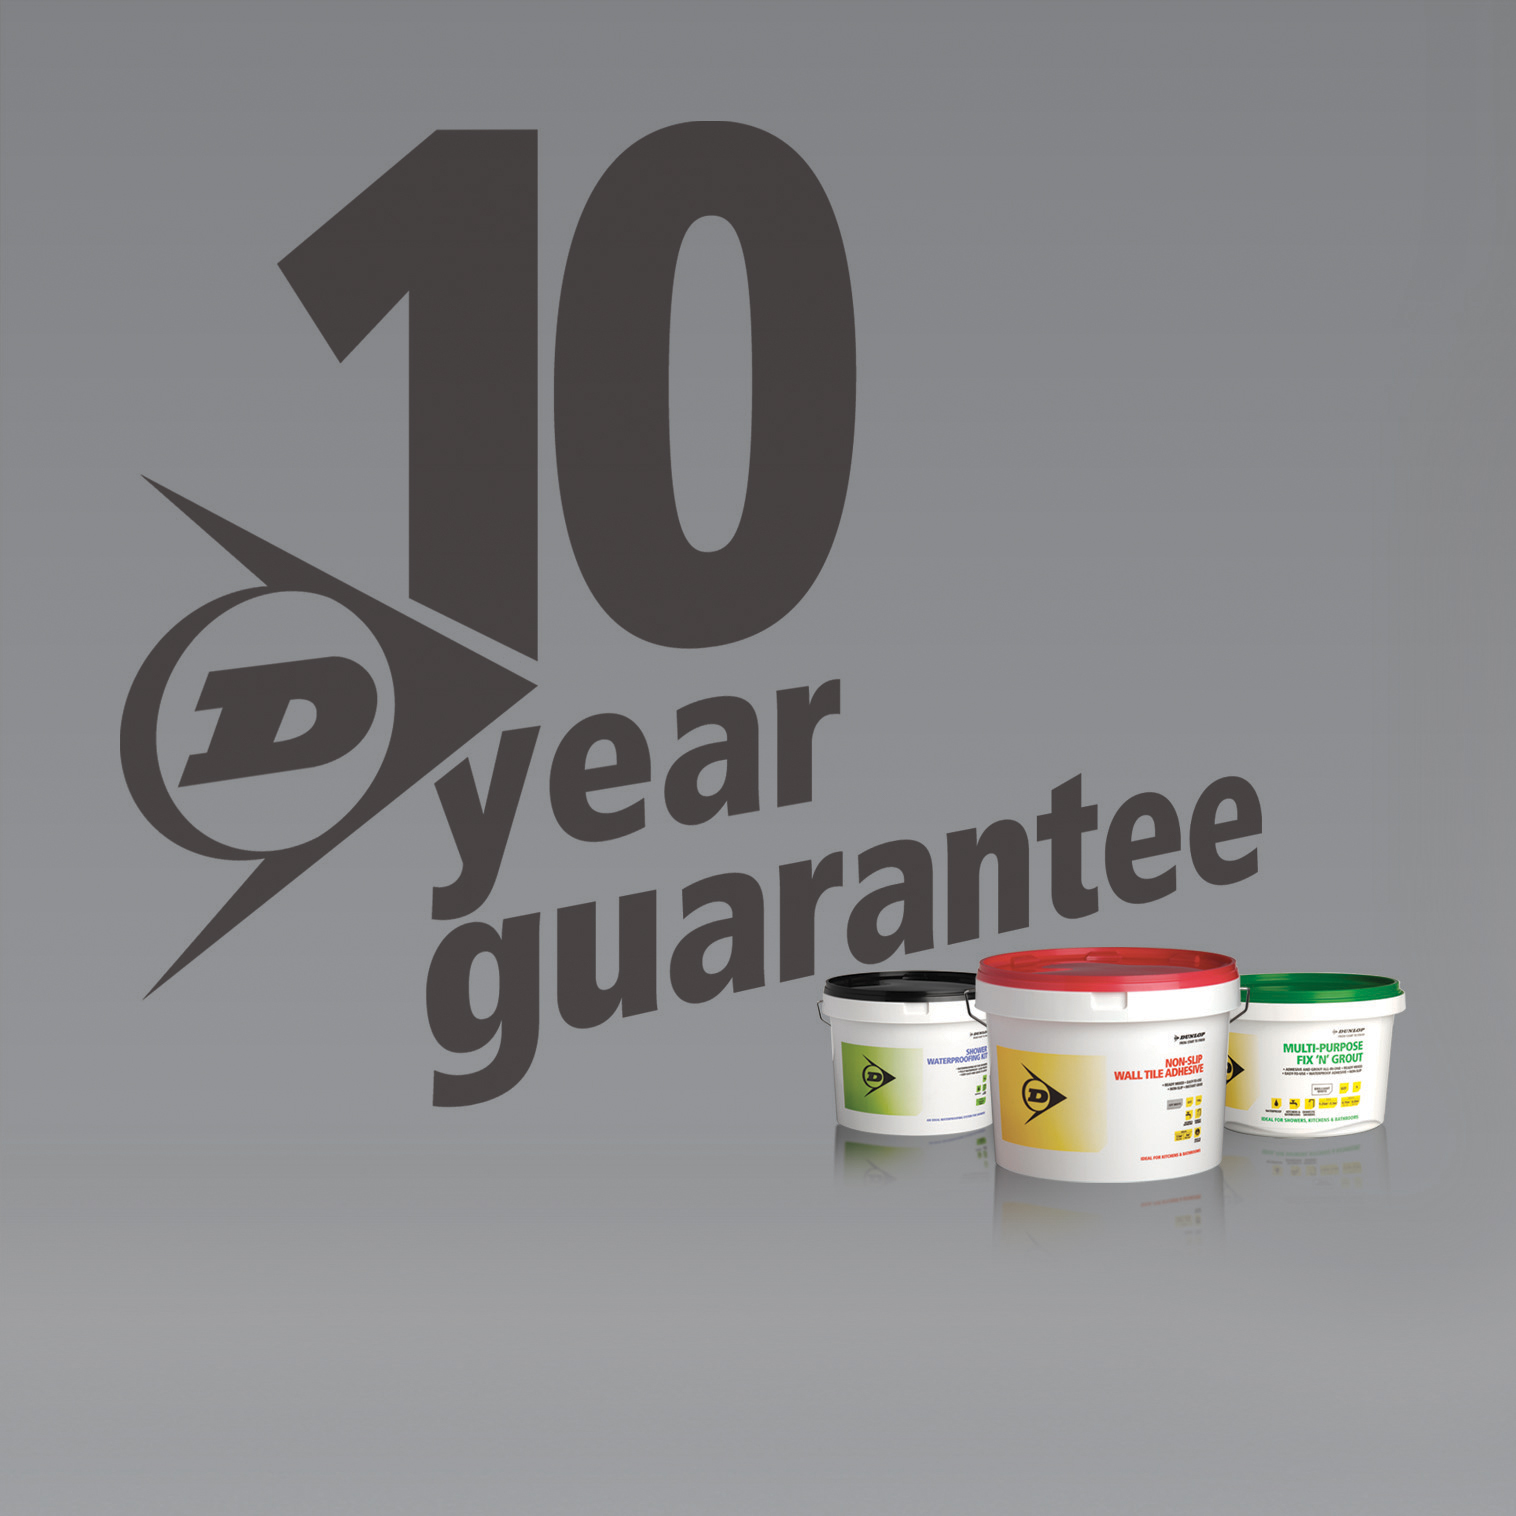 Click here to download a 300dpi jpeg of the Dunlop Adhesives ten year guarantee artwork